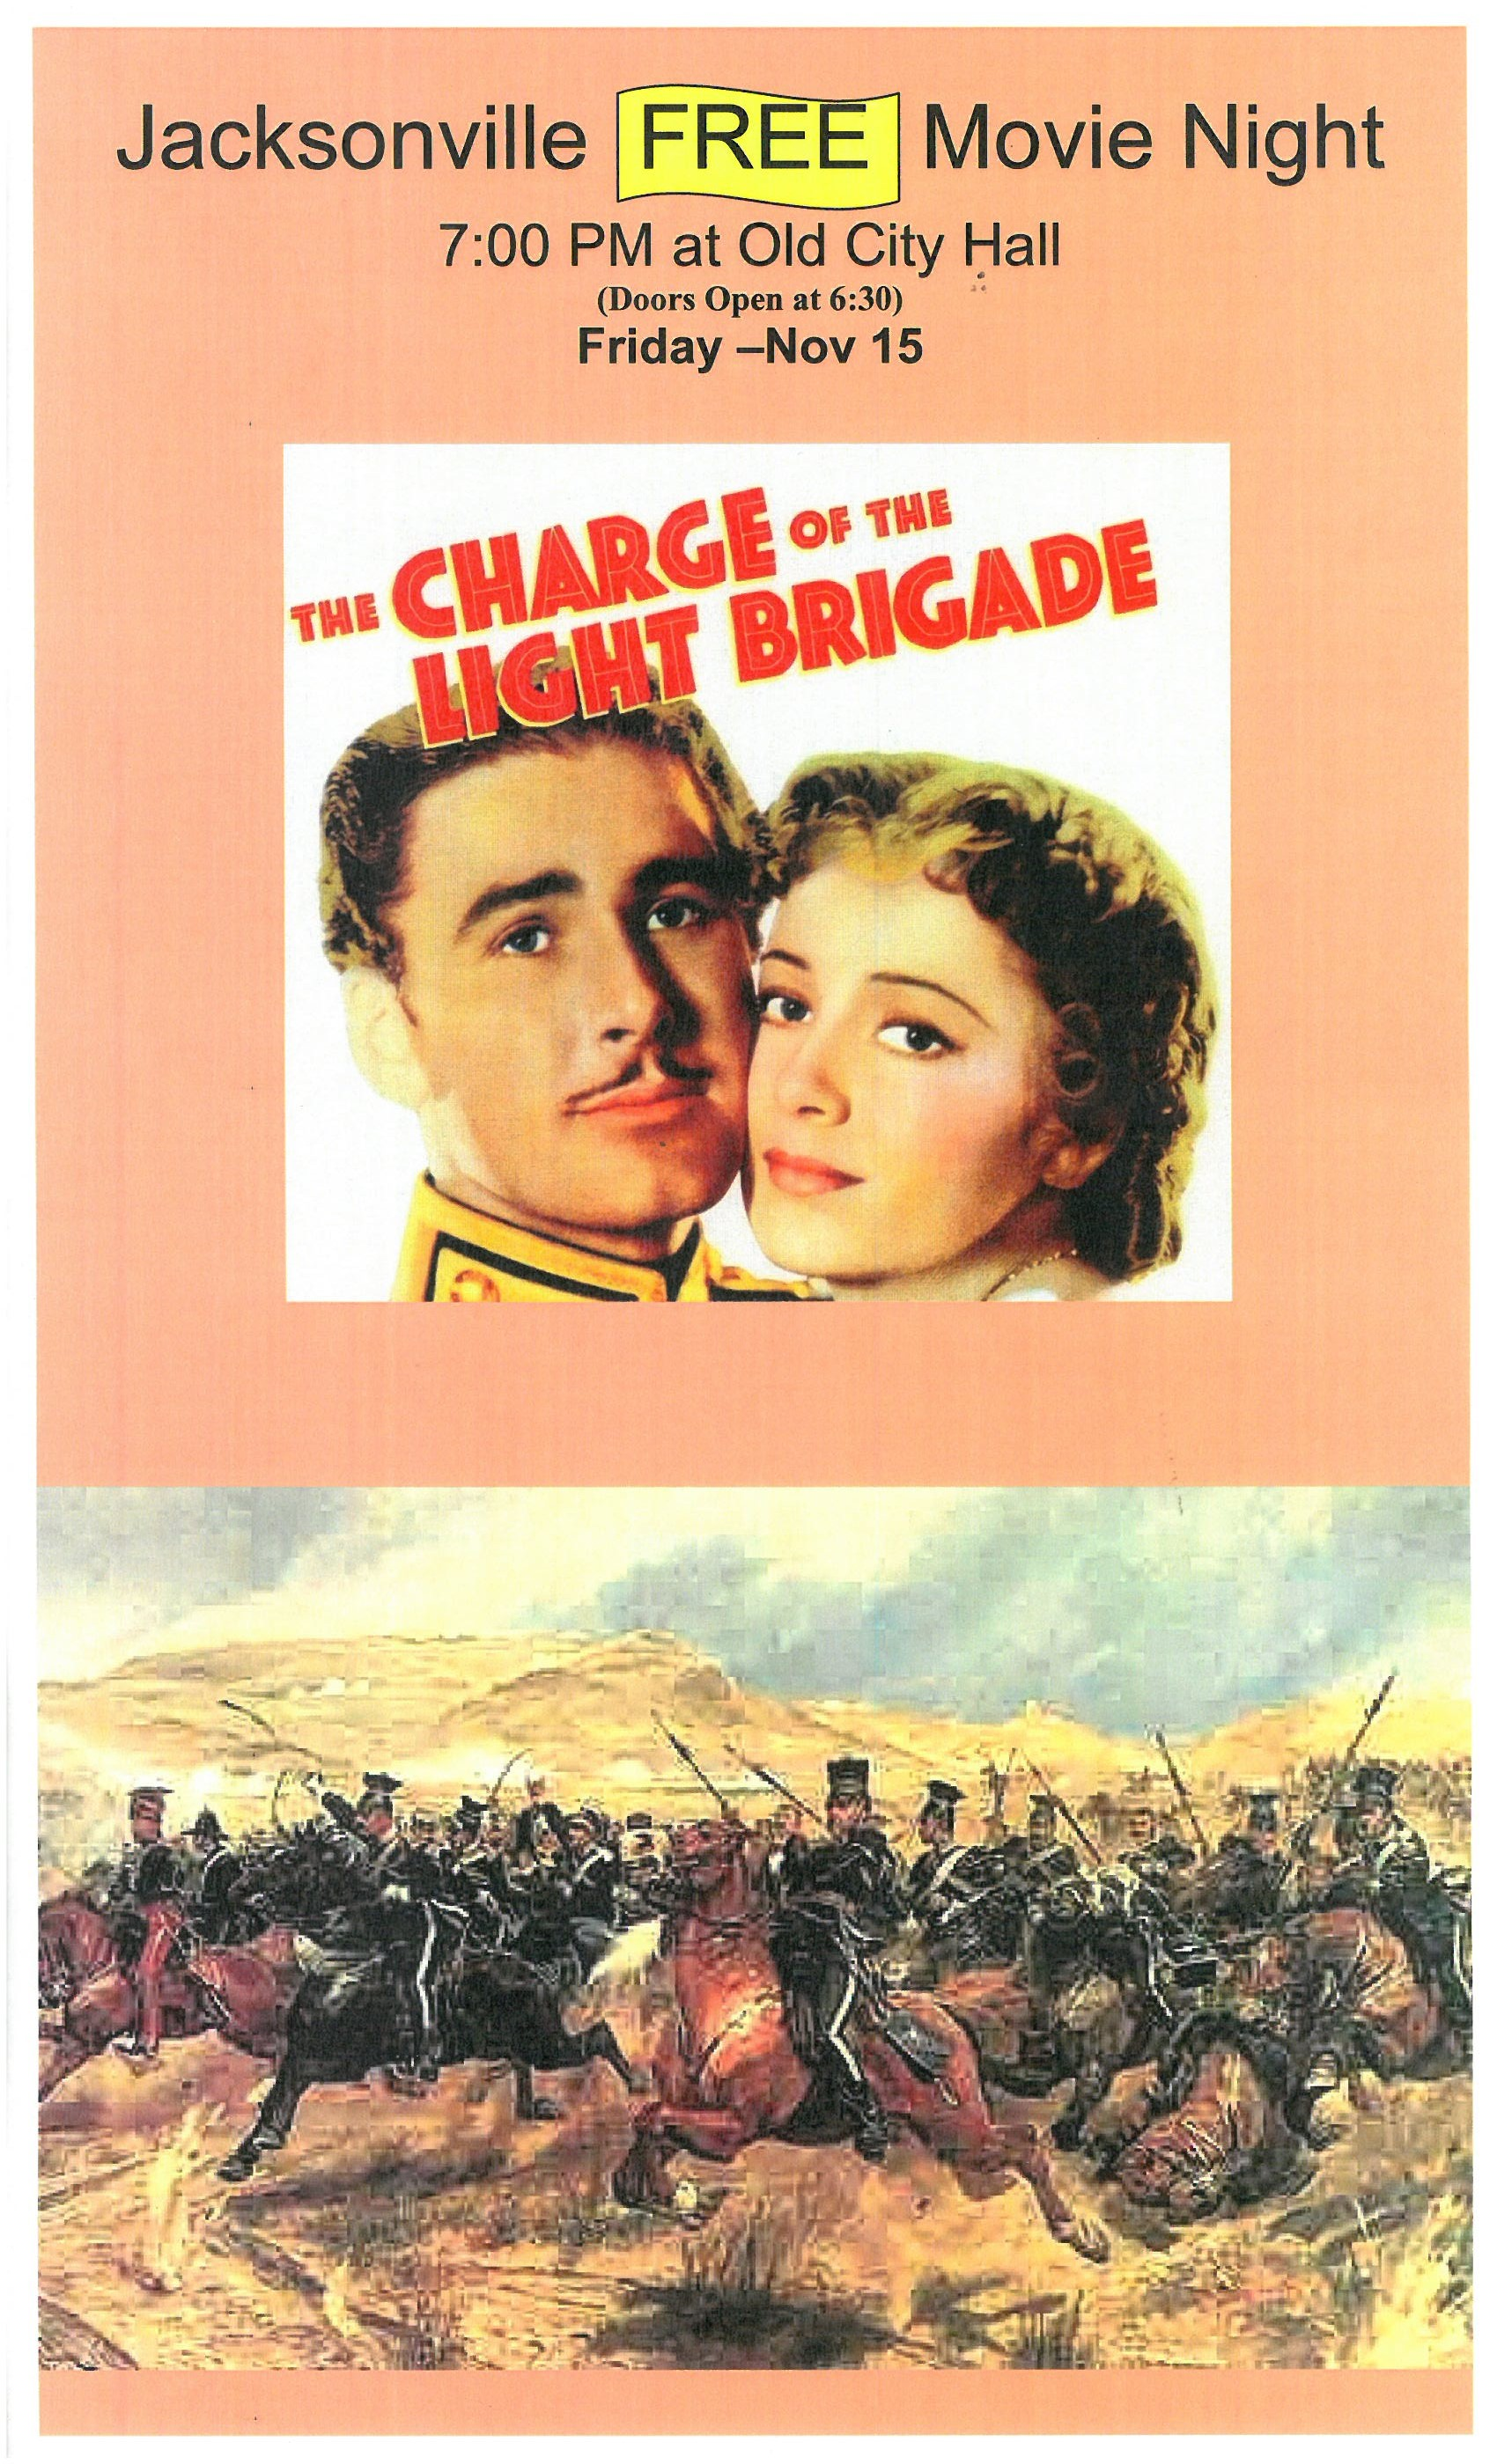 Movie The Charge of the Light Brigade 11 15 19